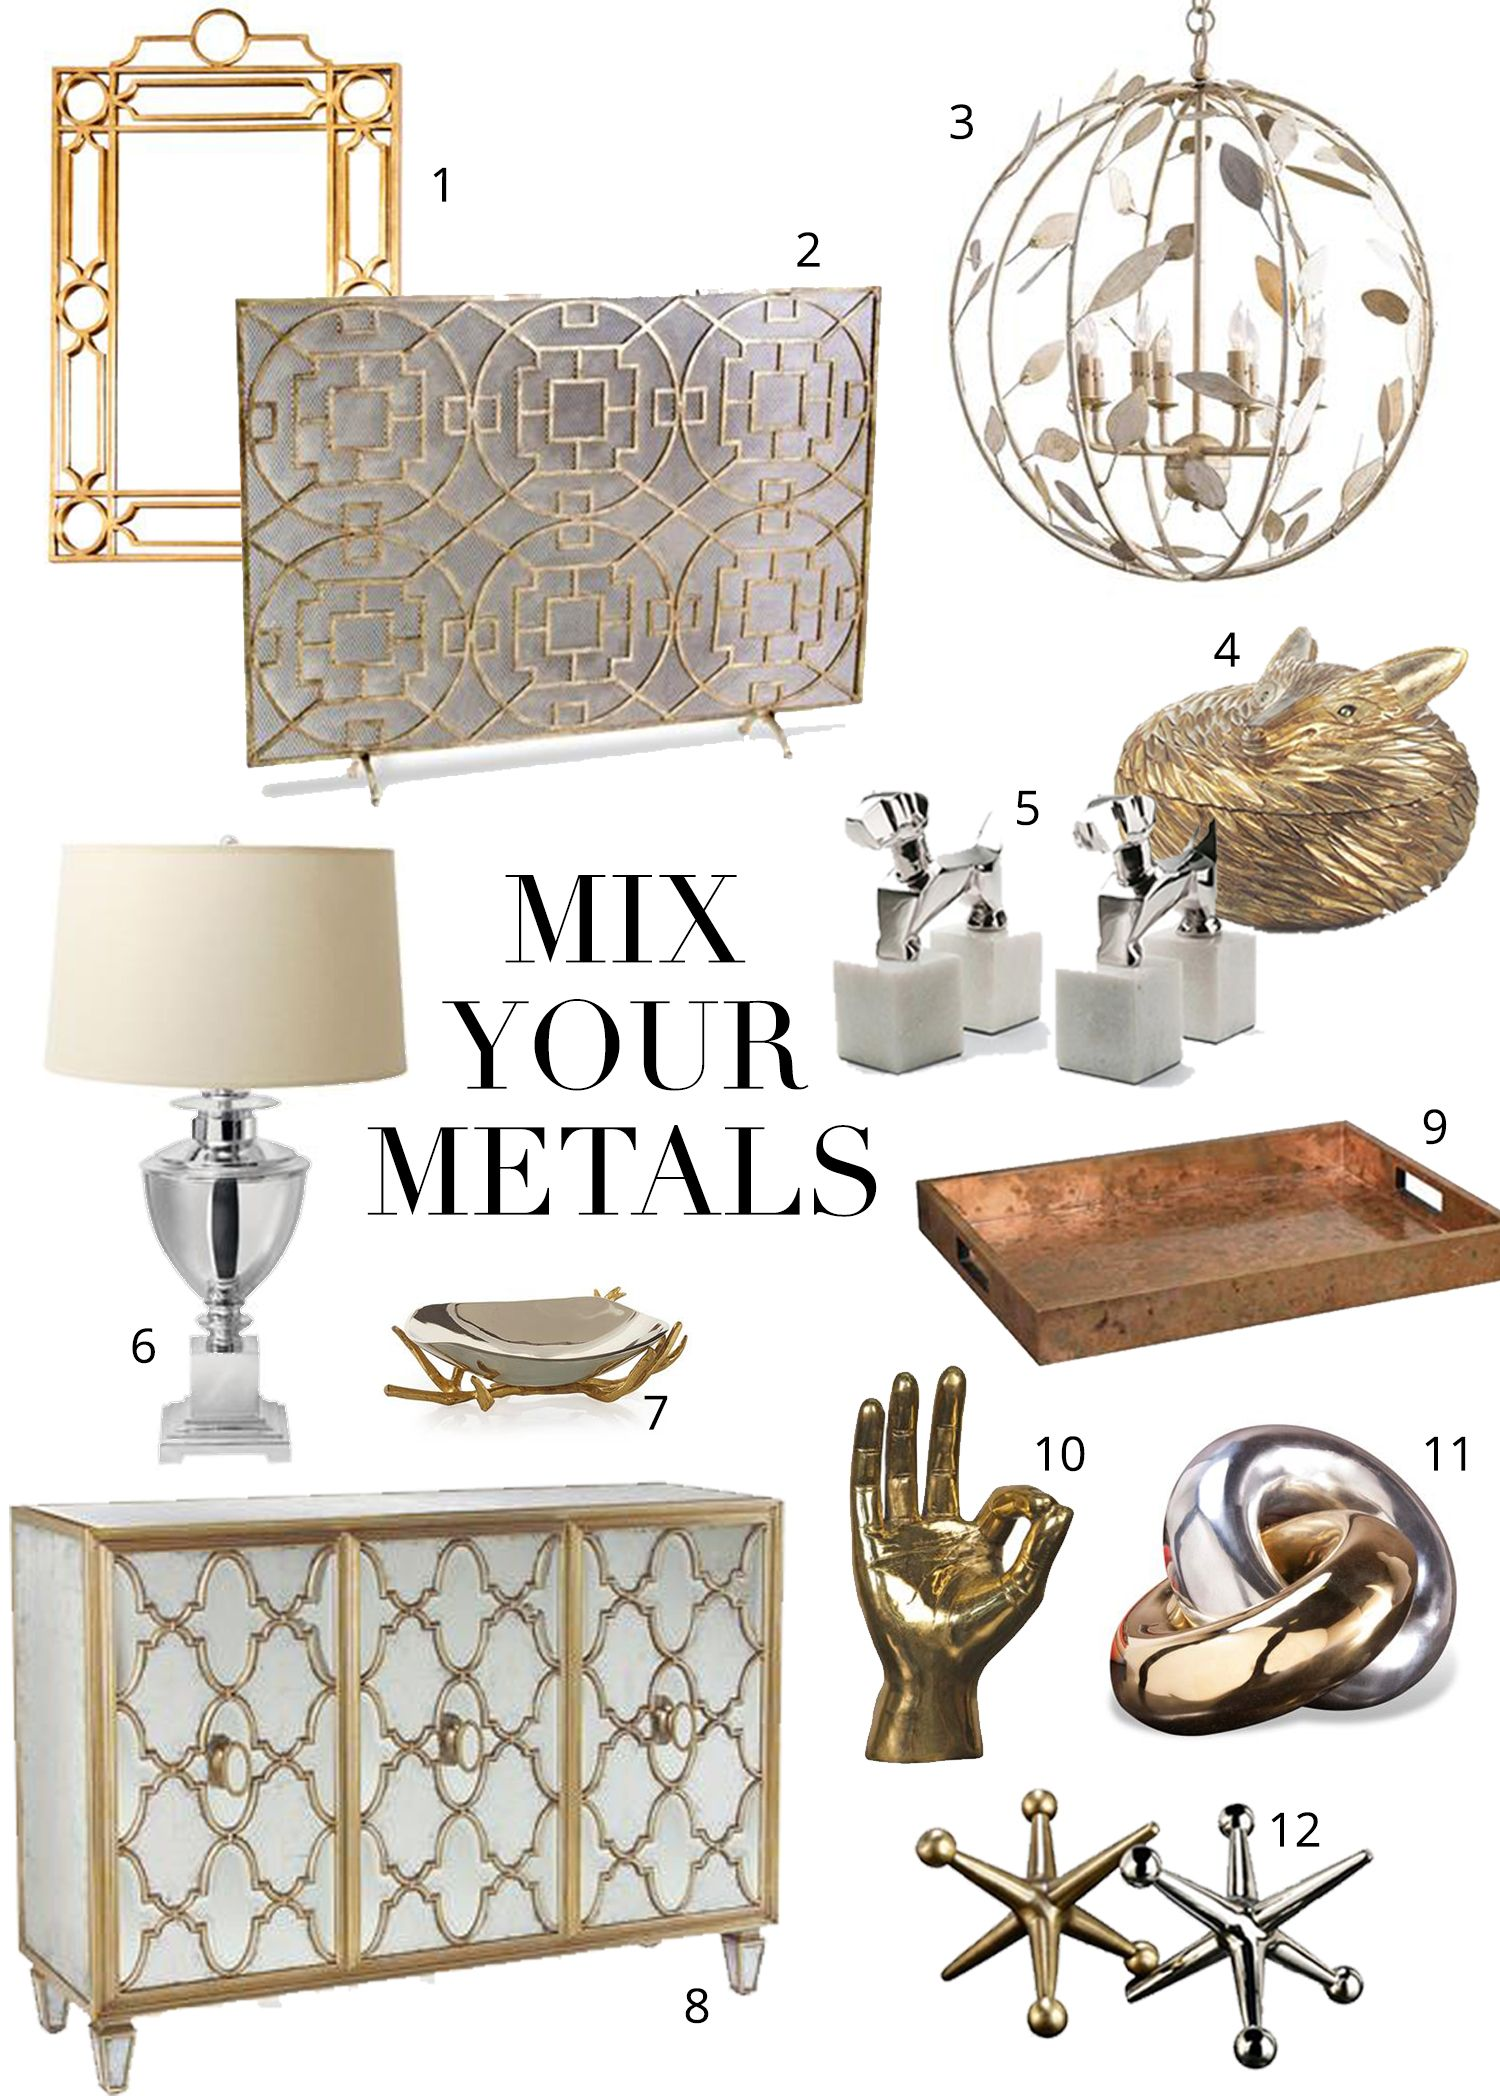 Photo of Mixing Metals at Home: The Do's and The Don'ts to Know | Kathy Kuo Home